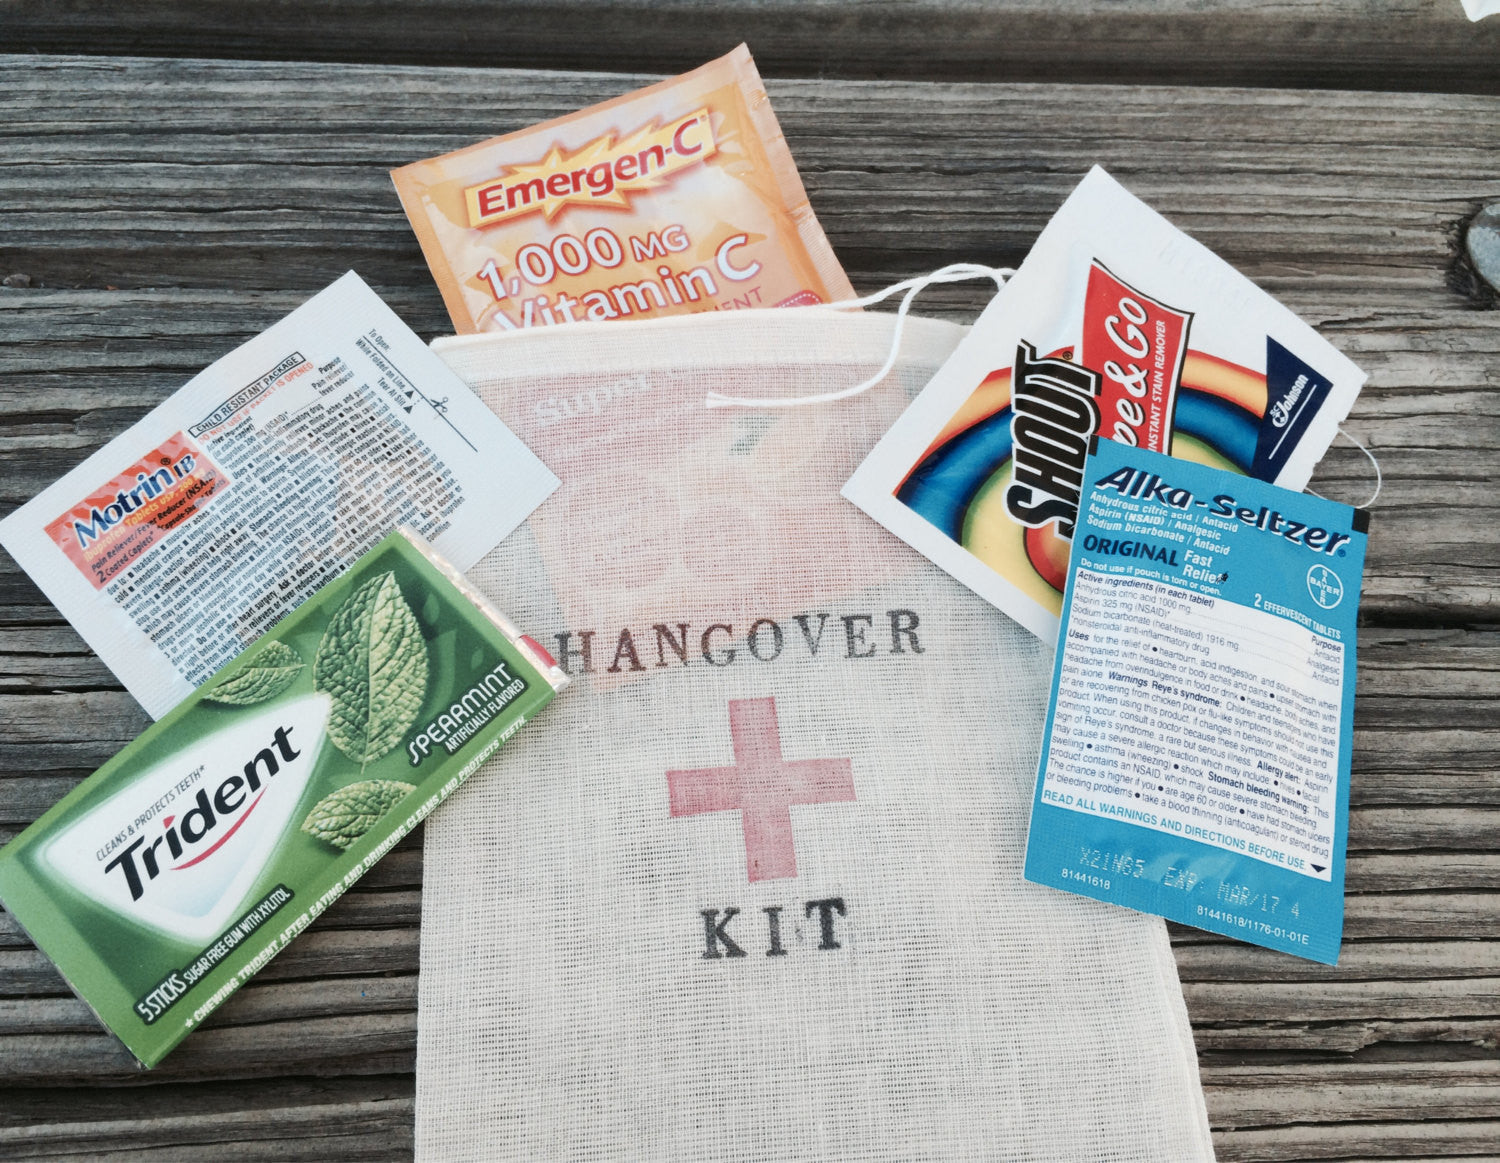 10 Complete Hangover kits, all inclusive hangover bag, hangover bag, pre-made hangover kit, complete hangover bags, welcome bags